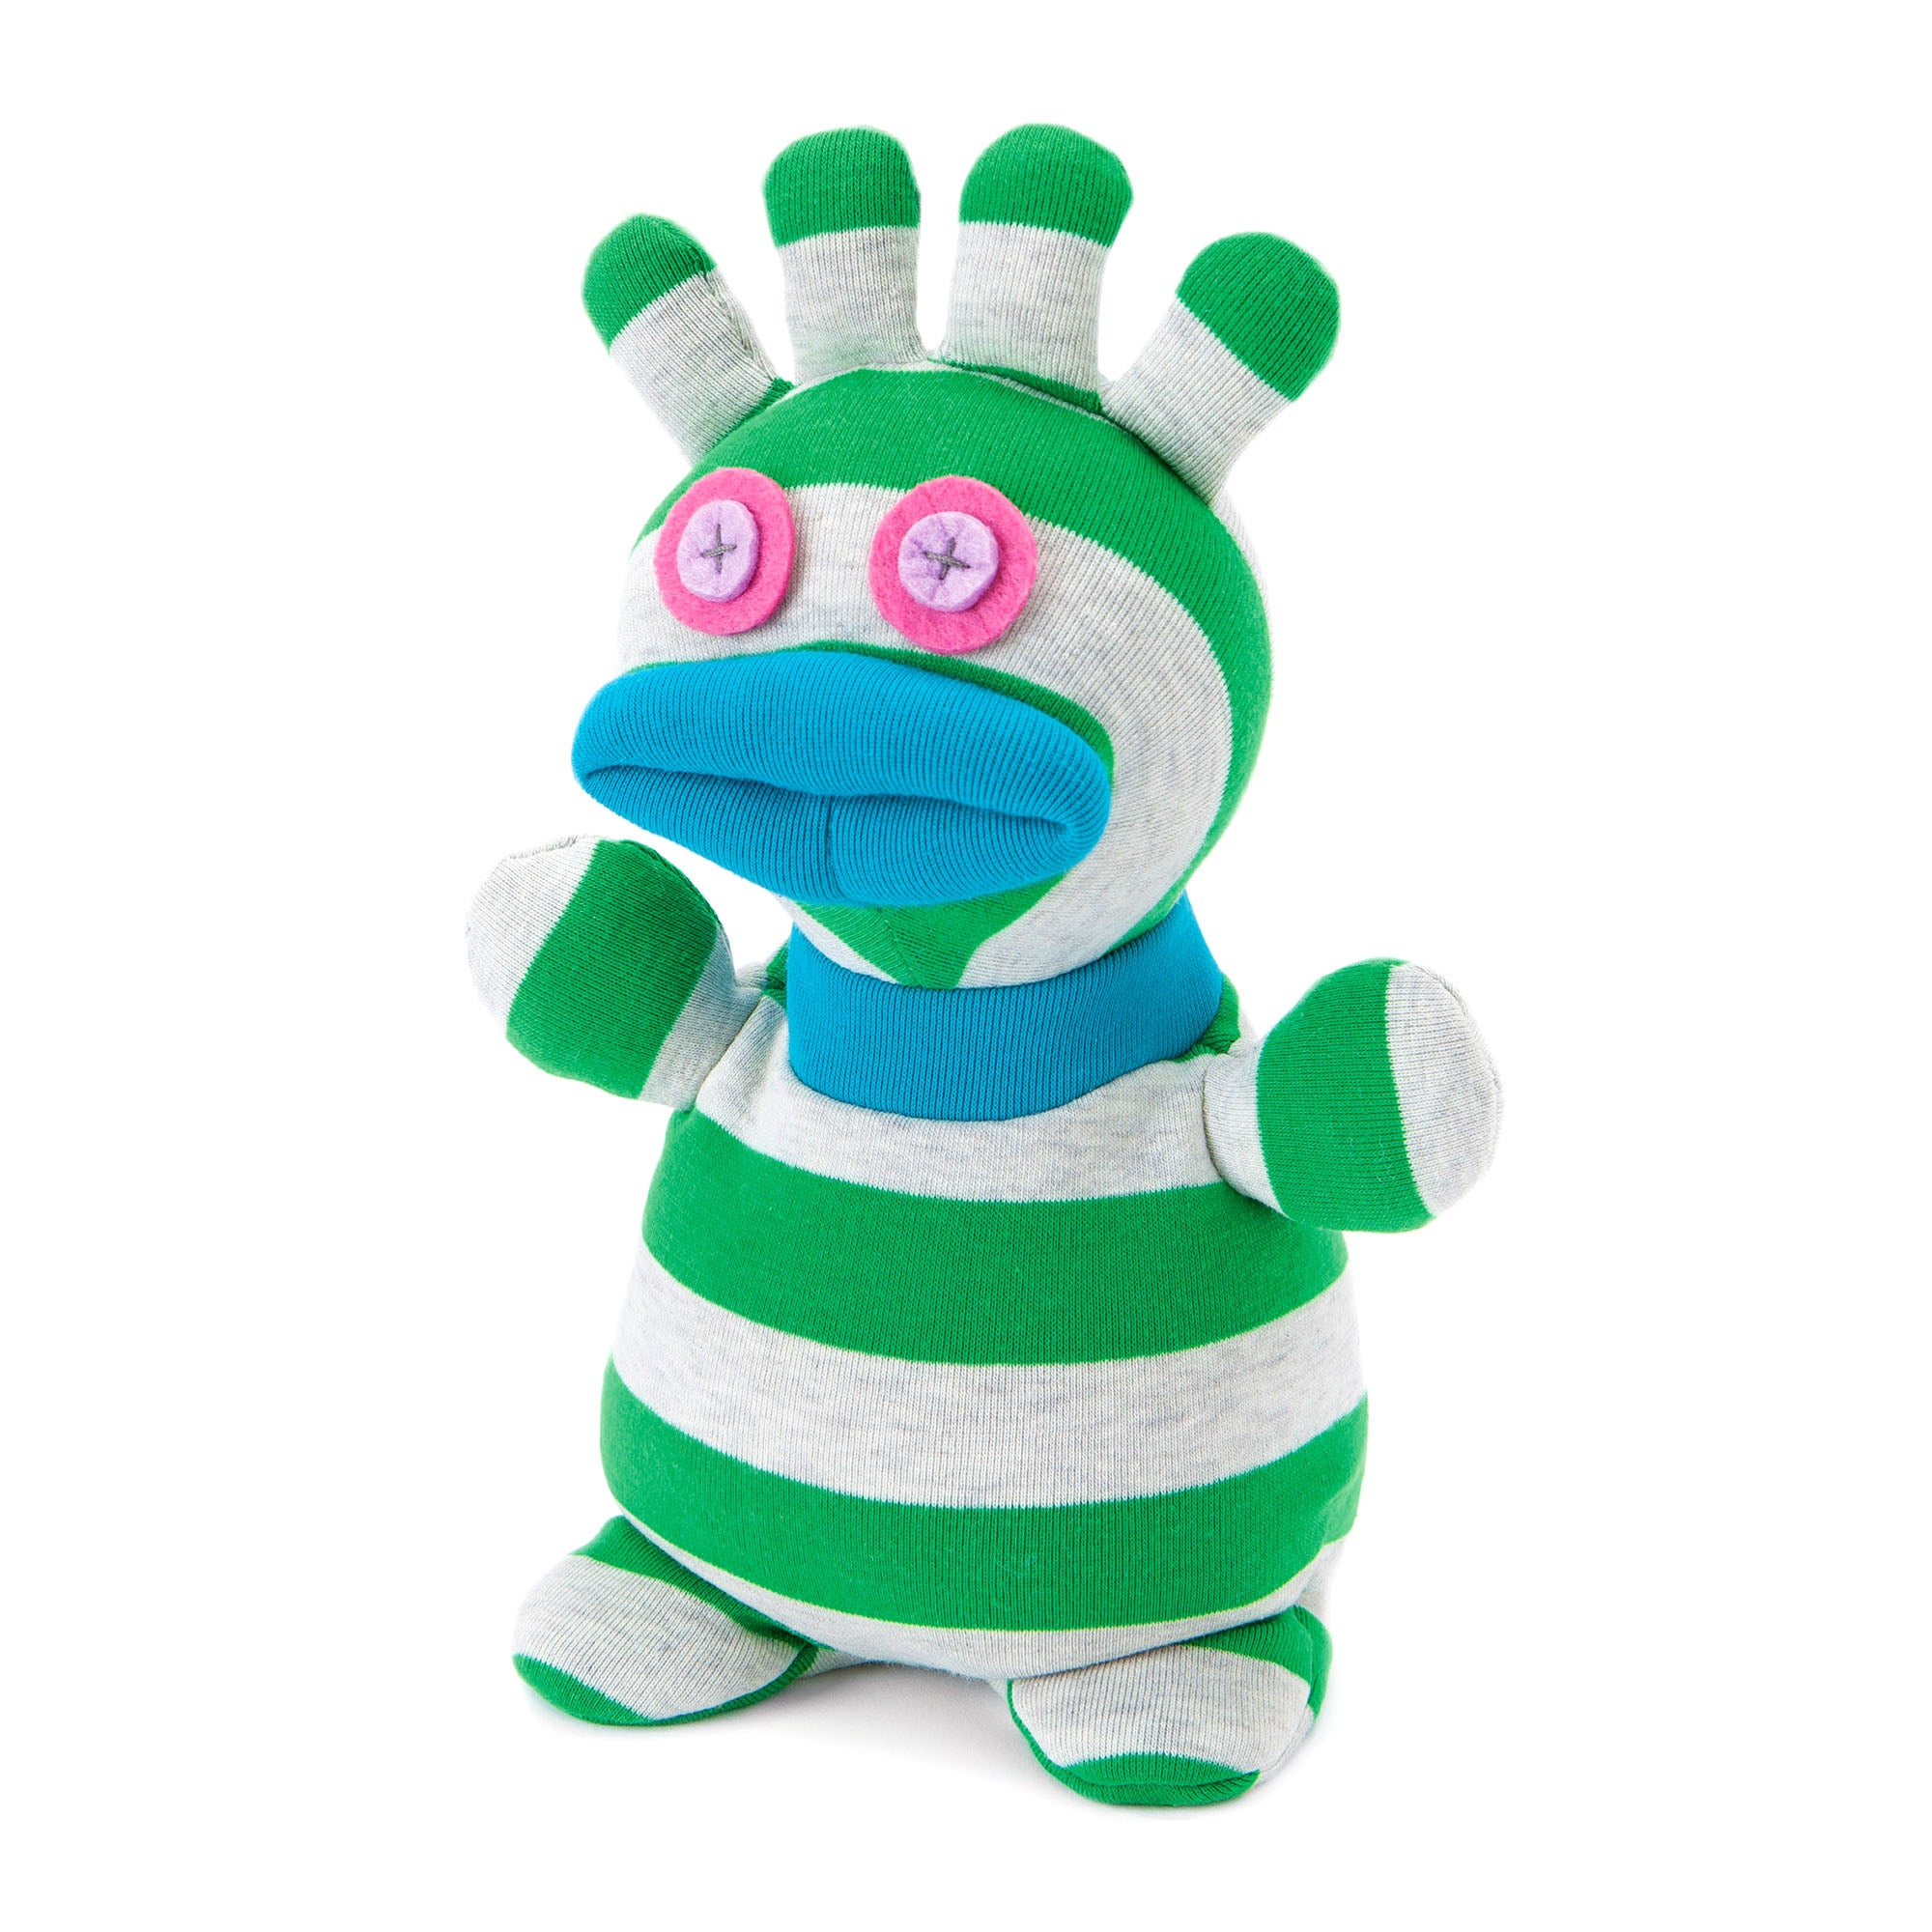 Heatable Socky Doll Boo The Monster